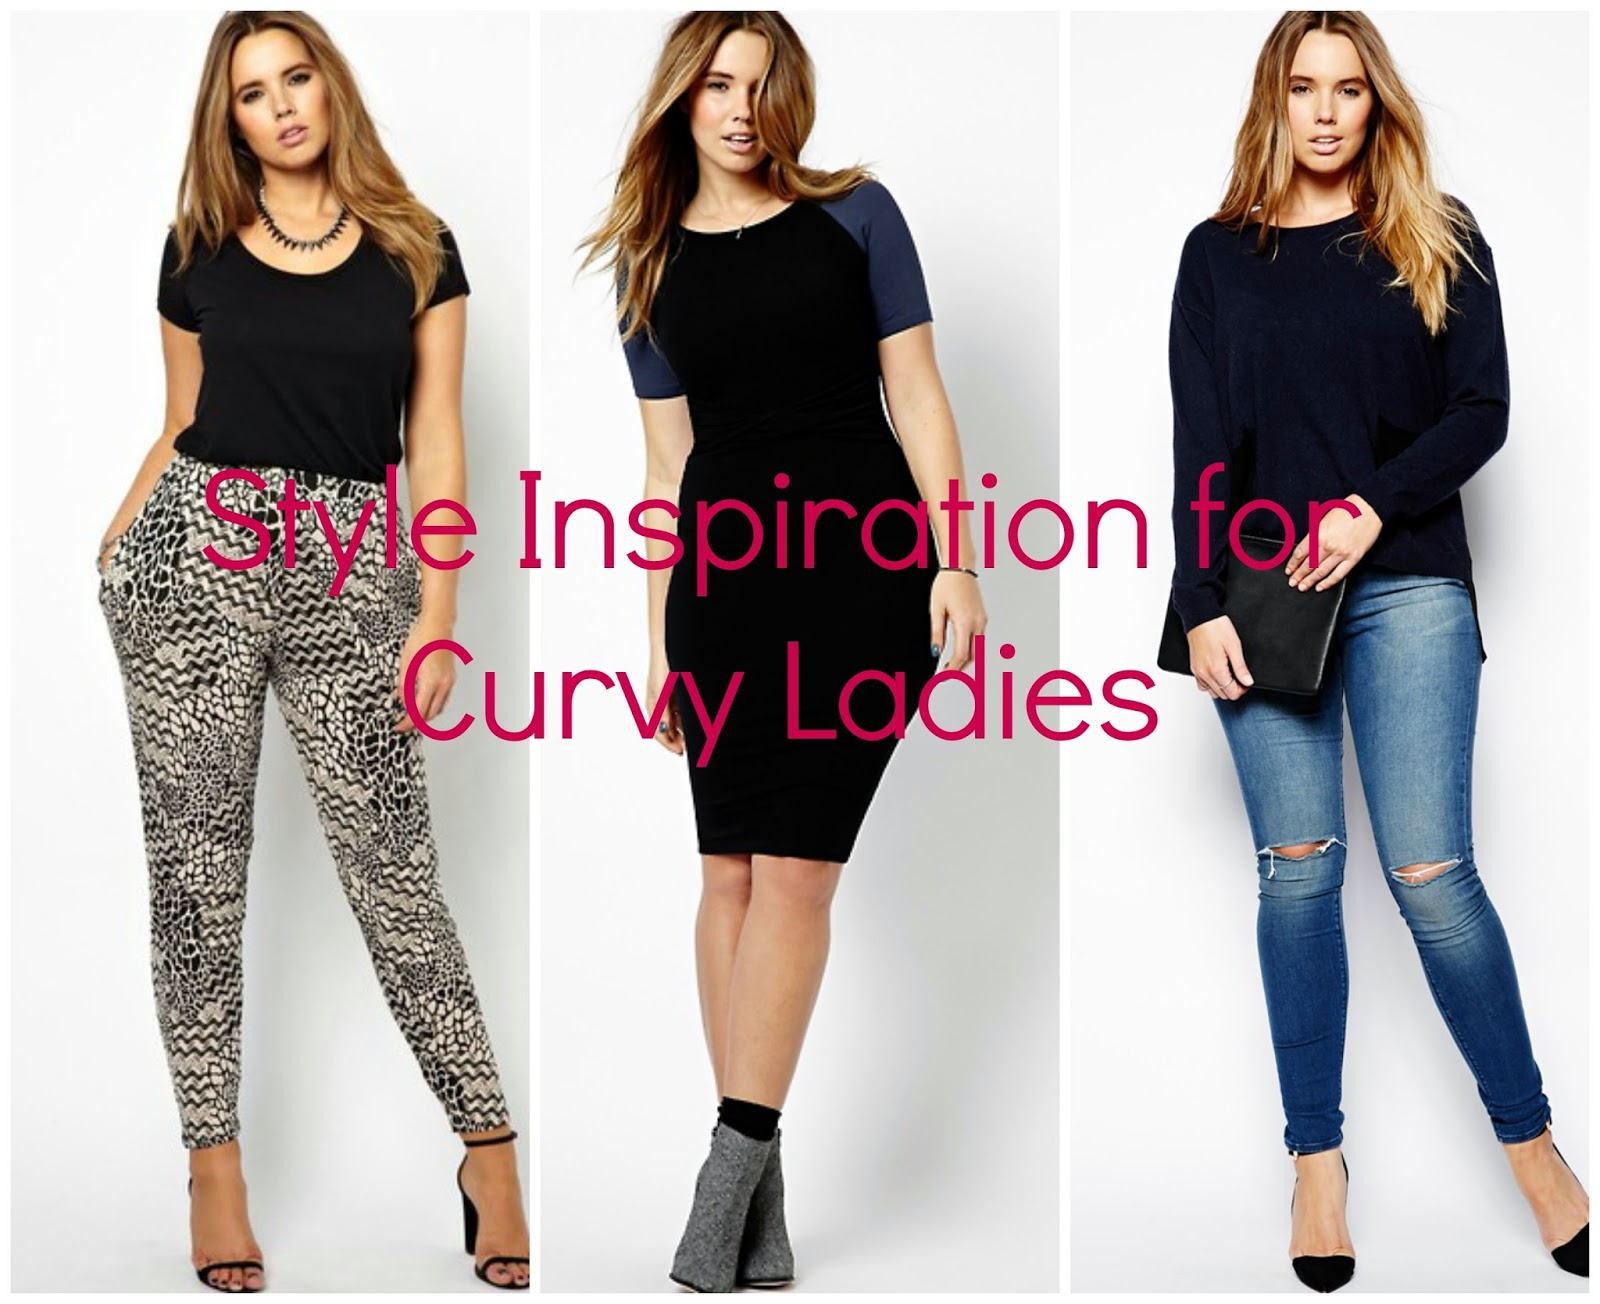 style-inspiration-for-curvy-ladies